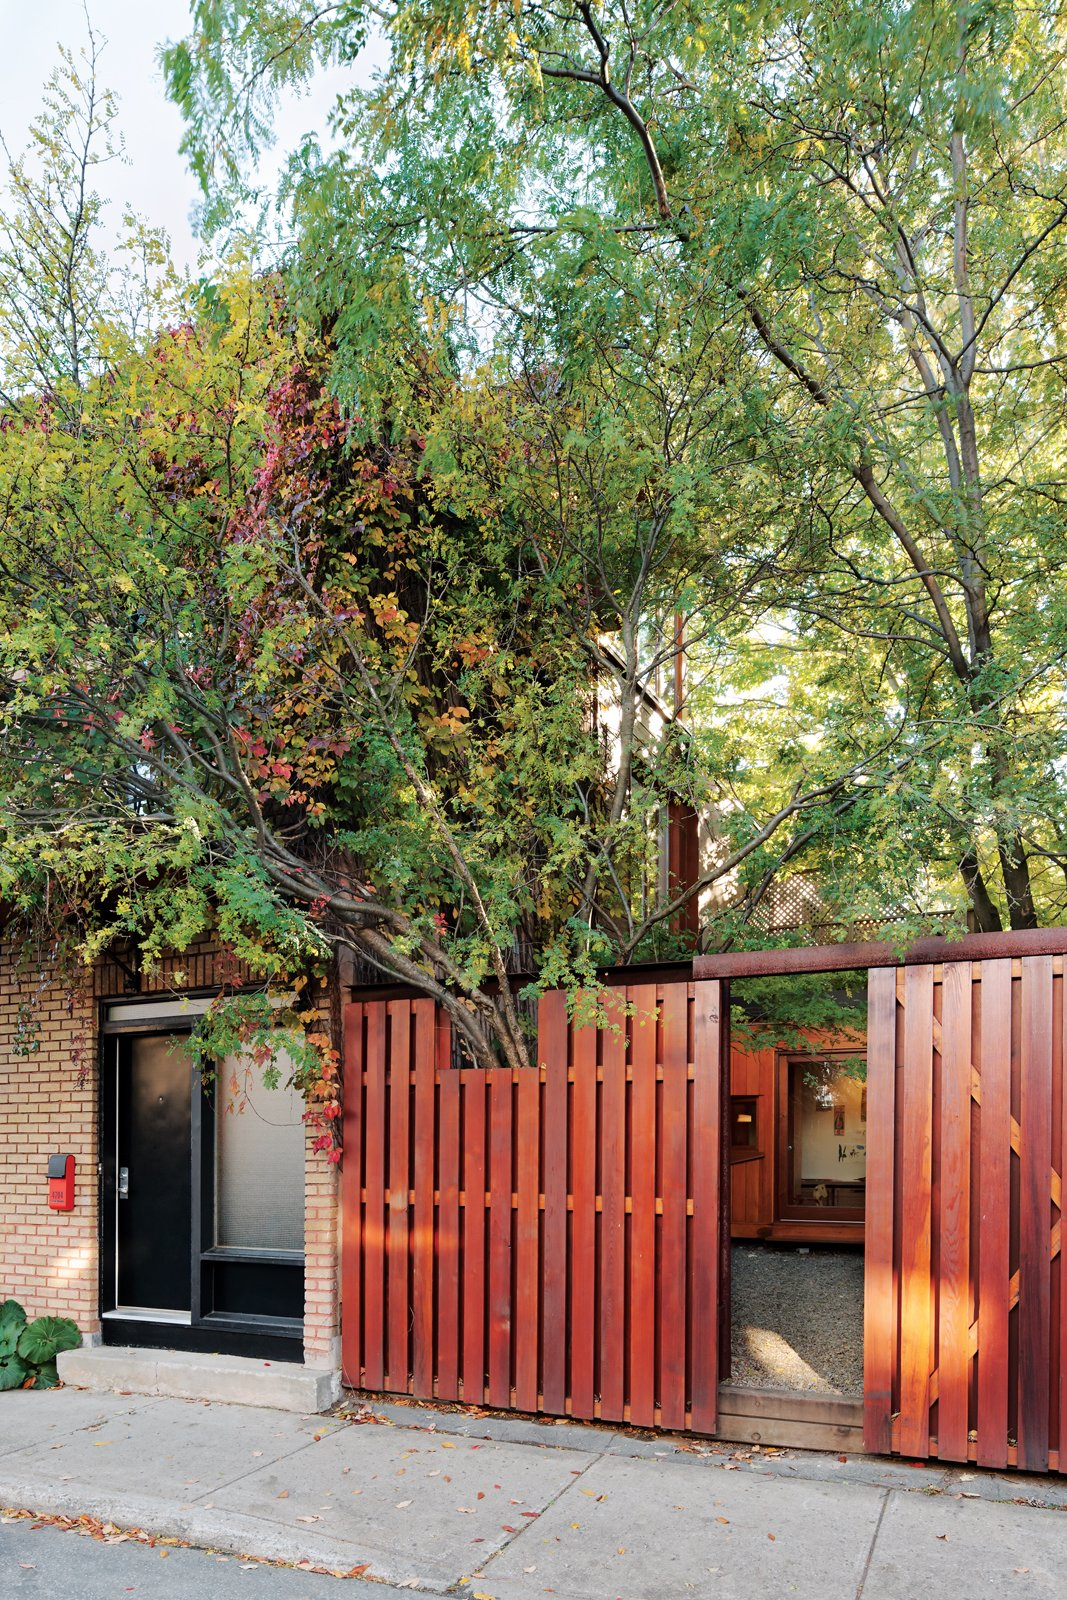 Sheltered behind the fence that runs along the sidewalk, the plantings give the courtyard the feeling of an urban oasis.  30+ Best Modern Fences by William Lamb from Separate Boîte Equal